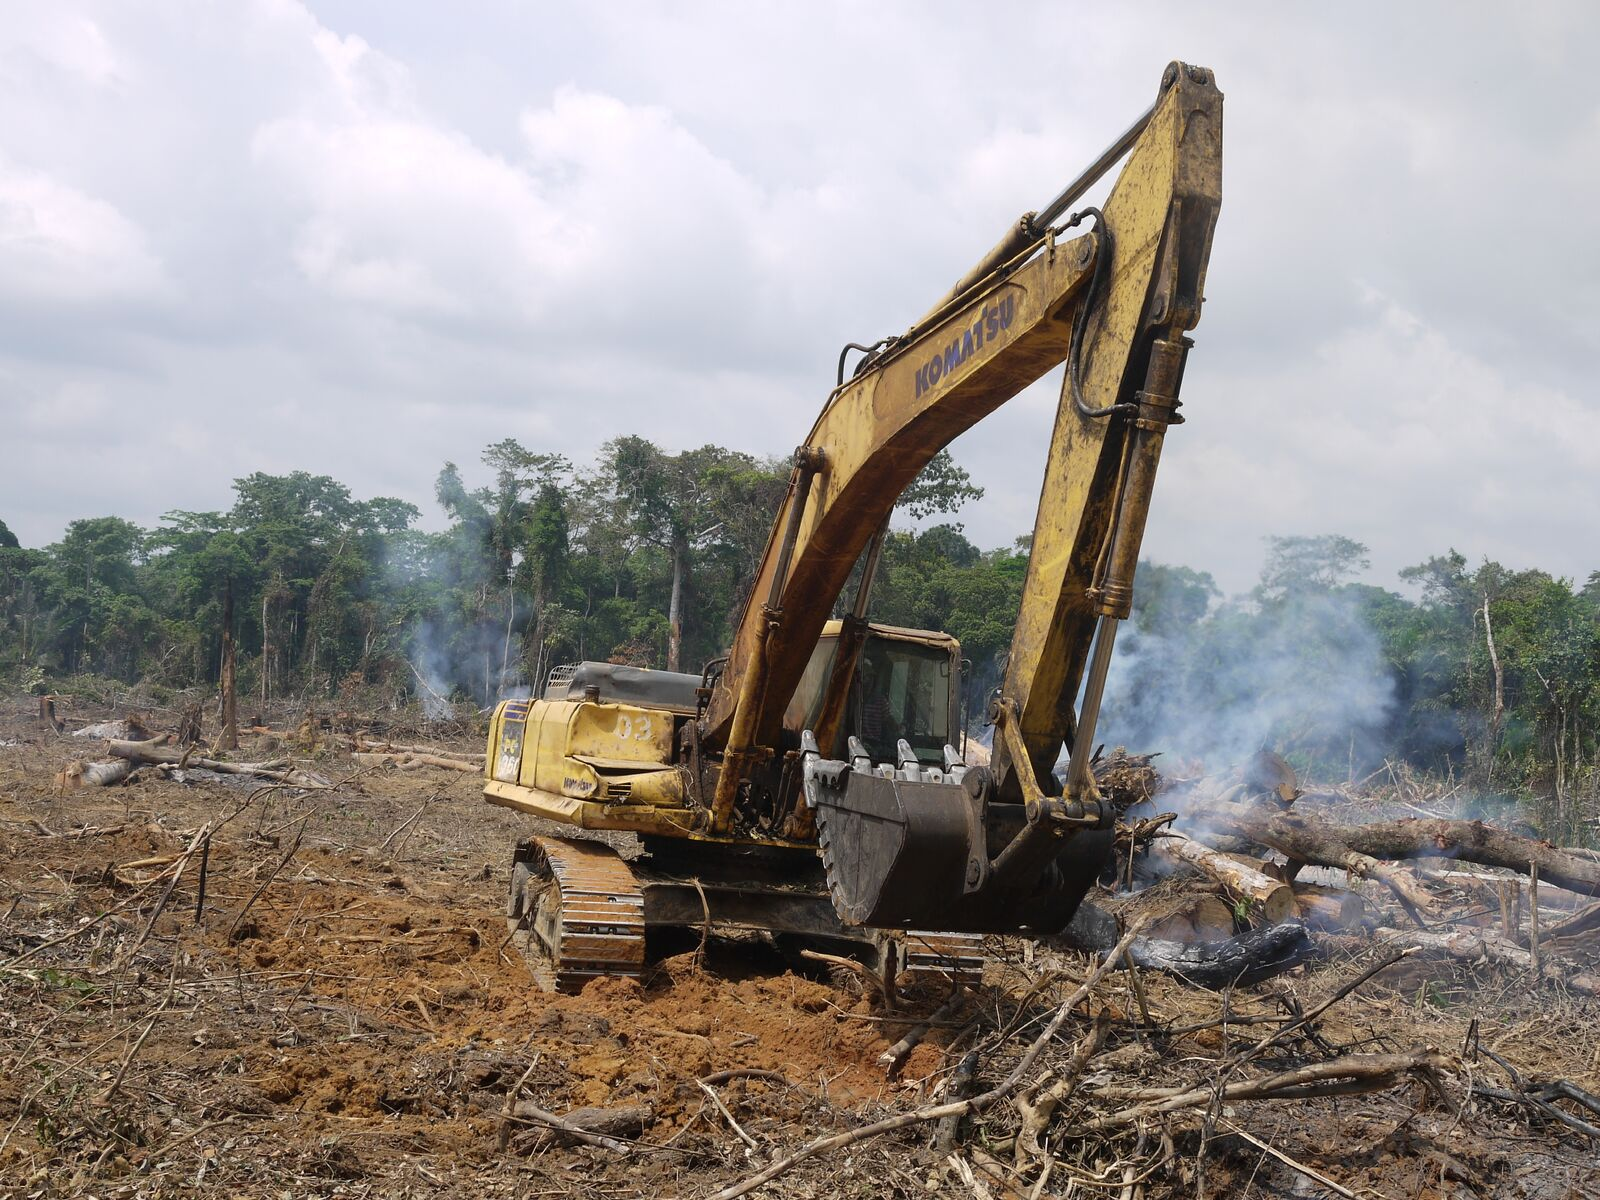 A Chinese road-construction corporation clears rainforests in the Congo Basin (photo: William Laurance).